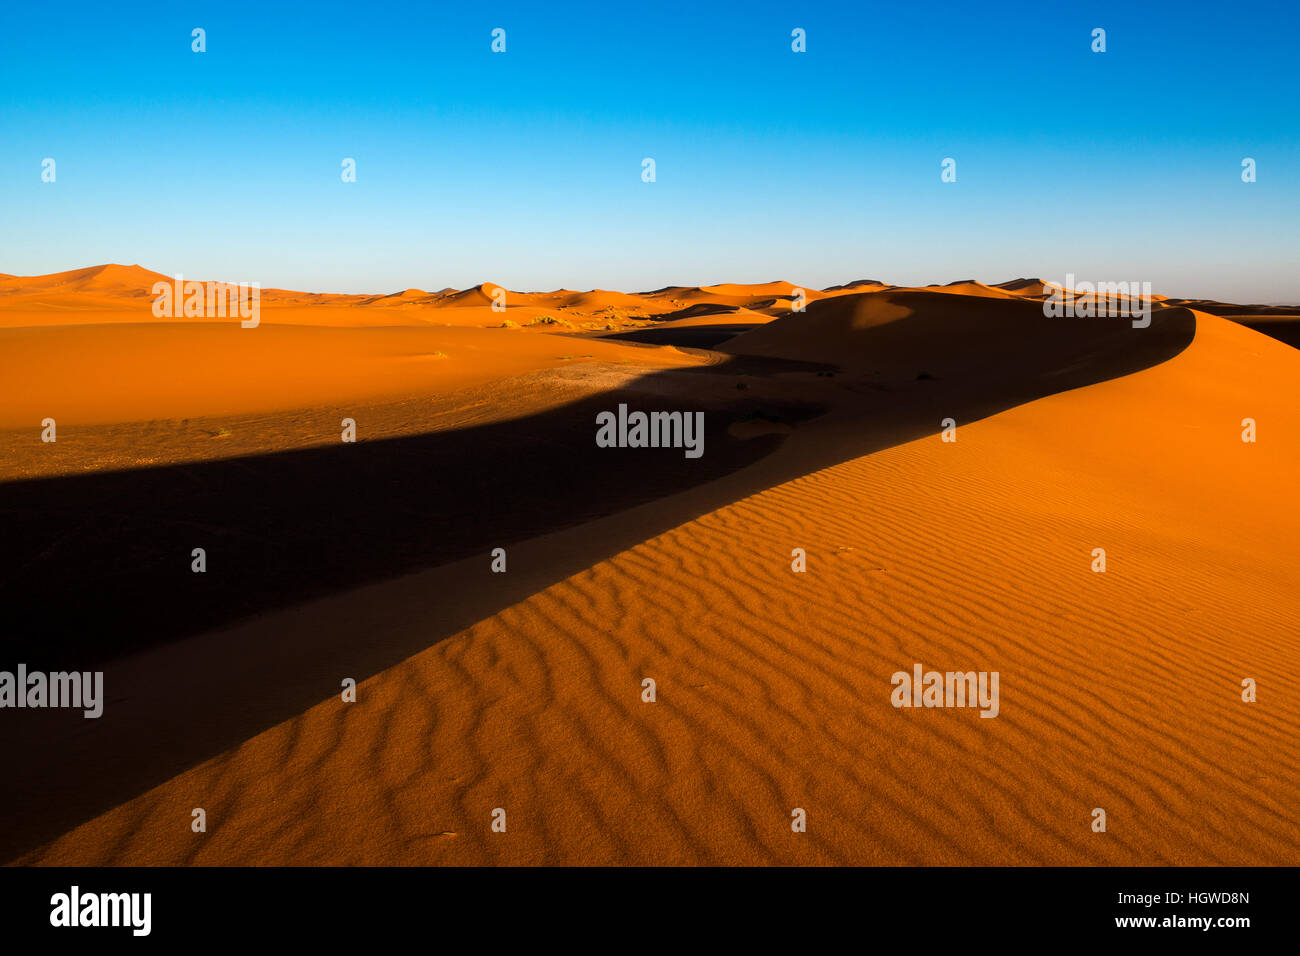 View of the dunes at sunset in Erg Chebbi near Merzouga in Morocco - Stock Image